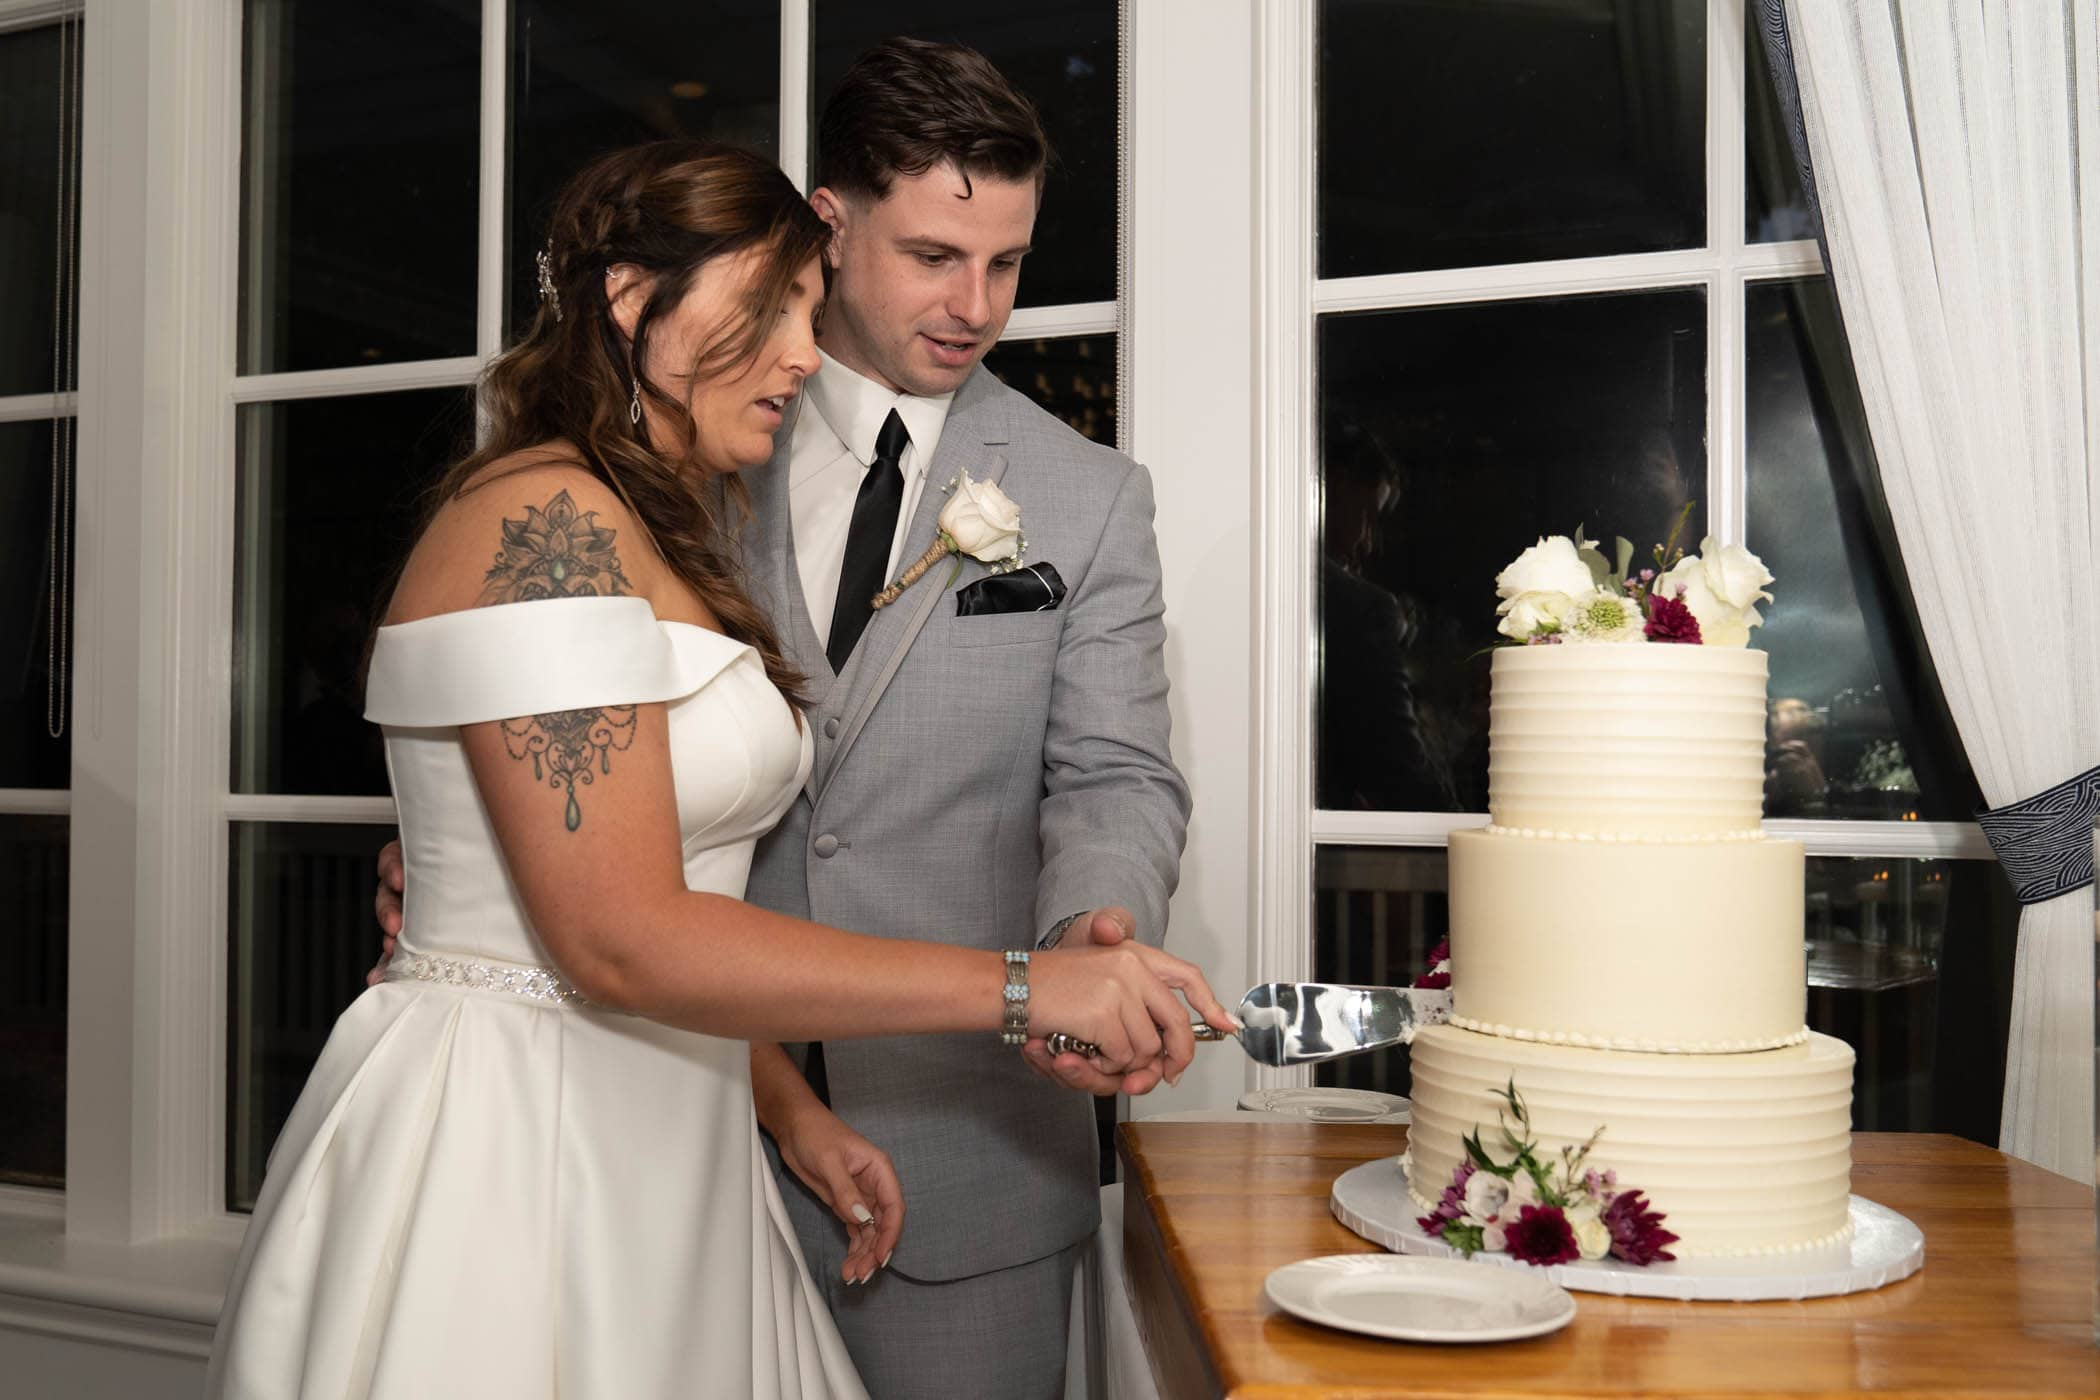 Bride and Groom cutting the cake Dataw Island Club House by Susan DeLoach Photography SC wedding photographers